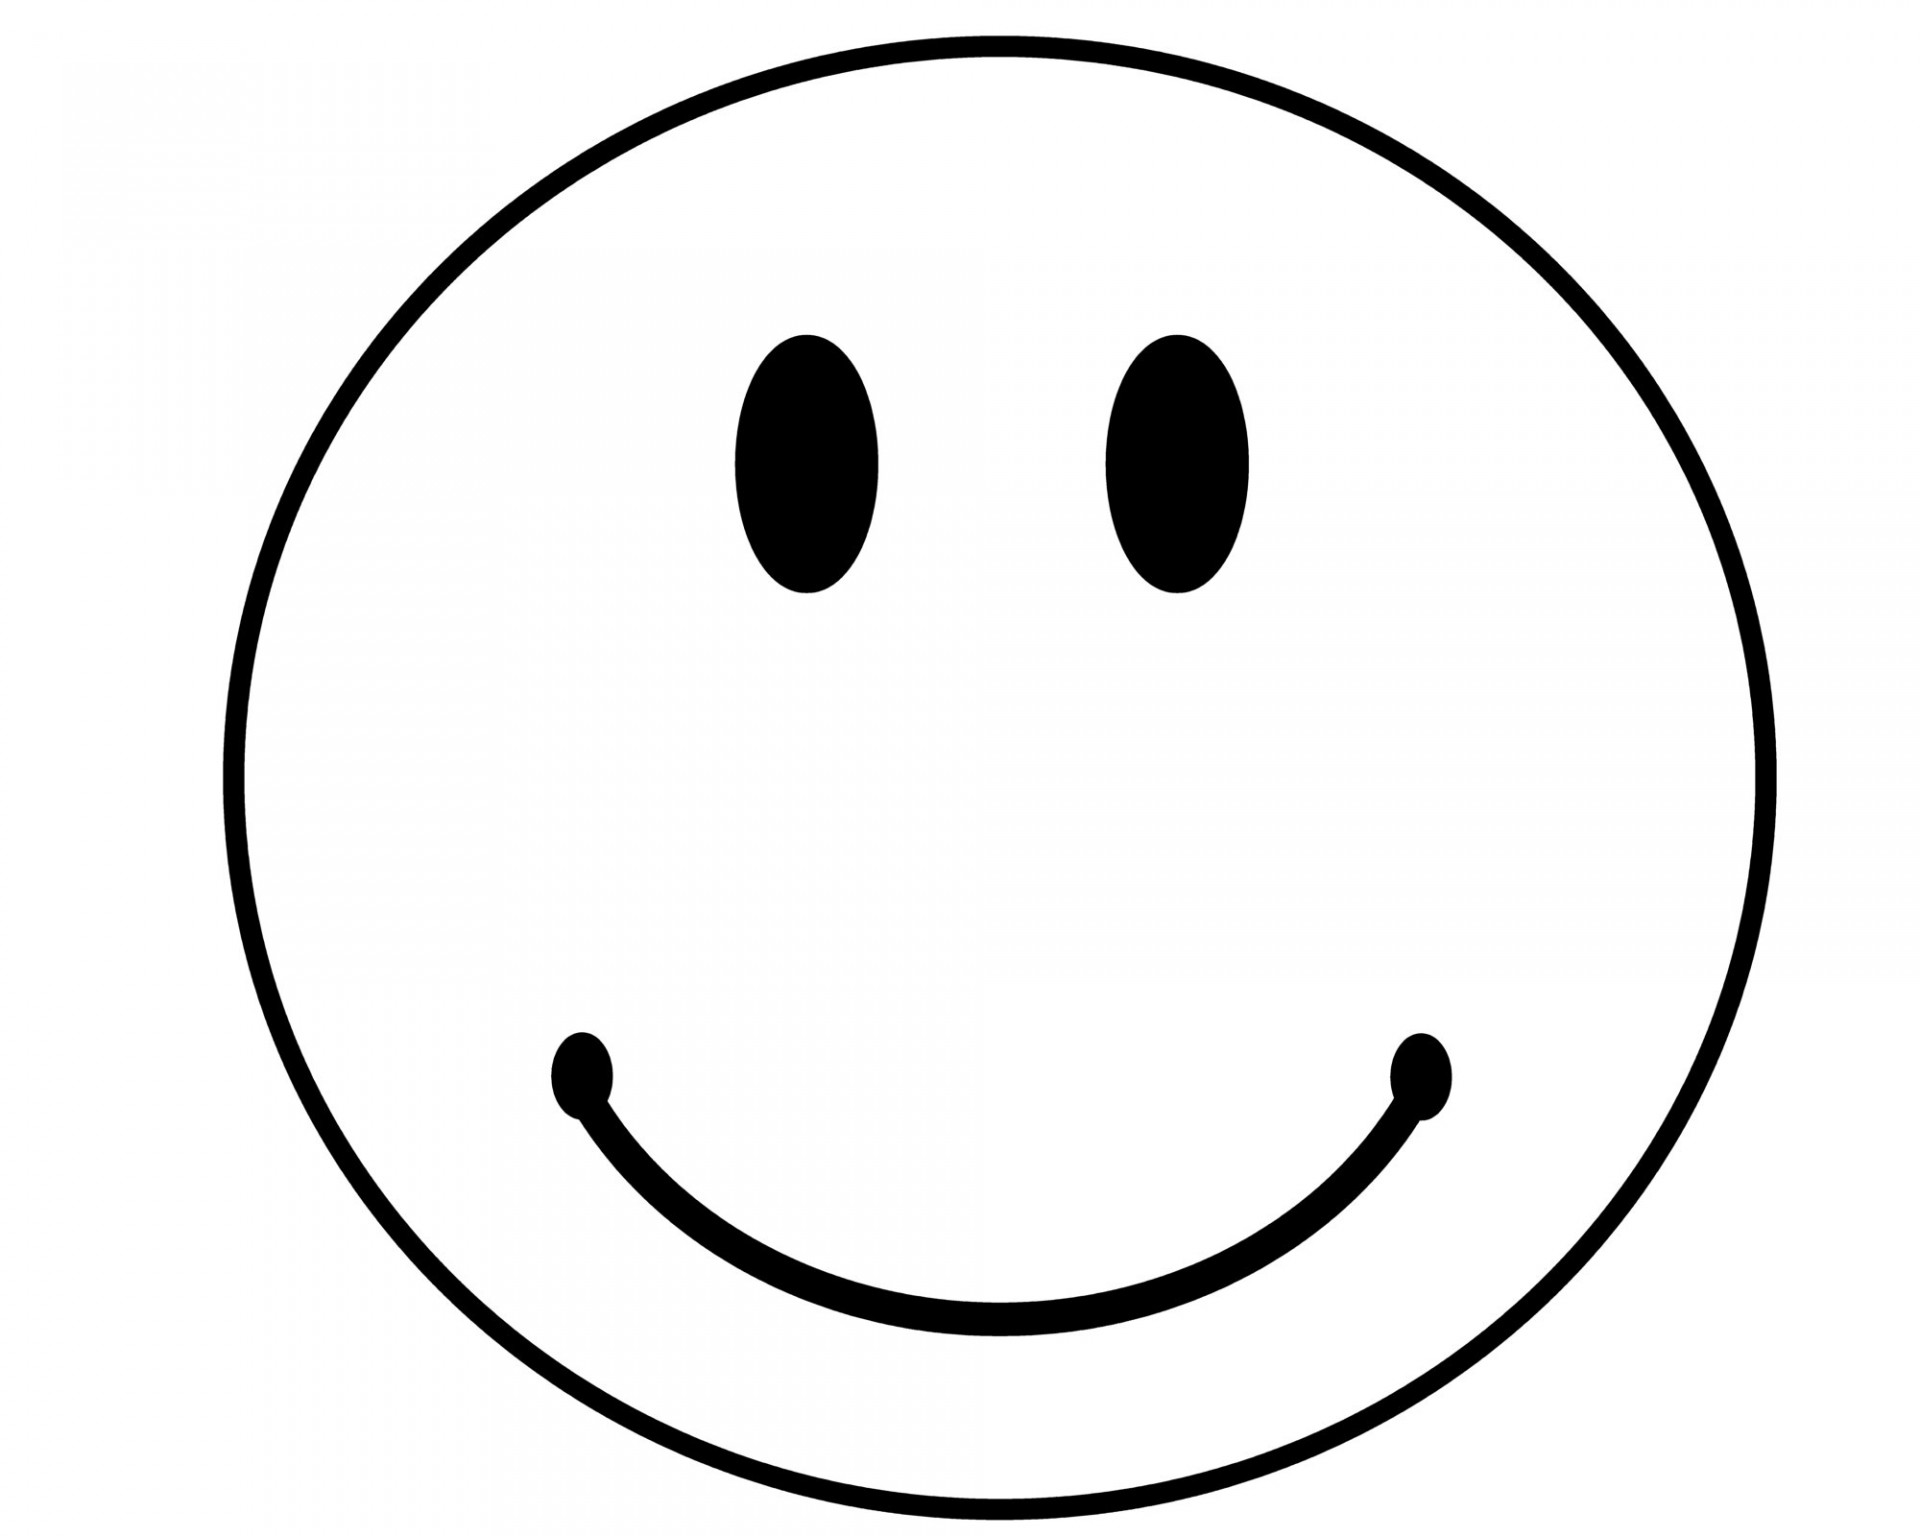 Free clip art smiley face tumundografico-Free clip art smiley face tumundografico-15